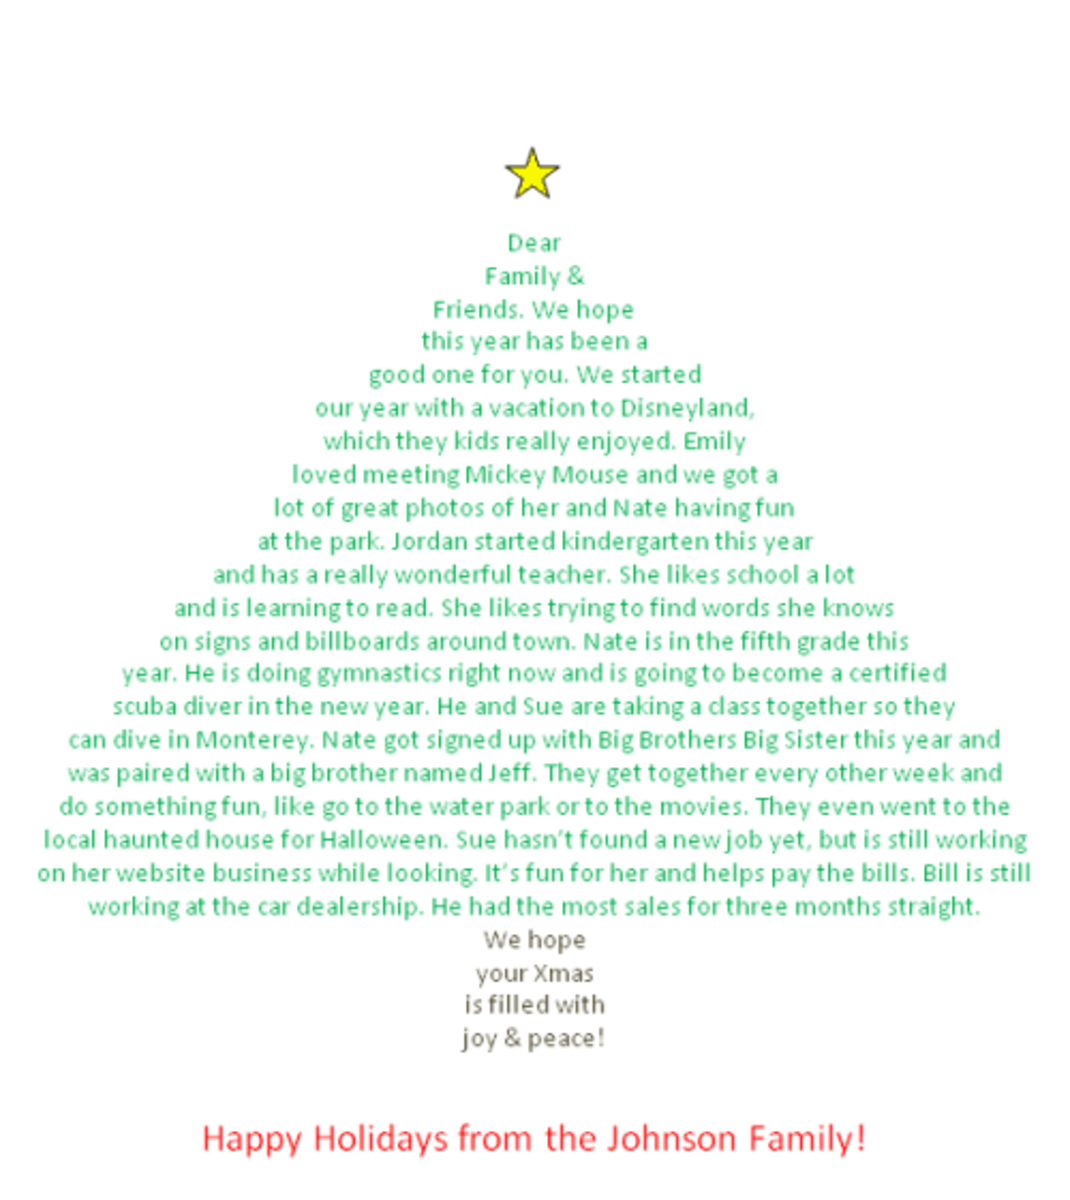 Christmas Tree-Shaped Christmas Letter - Make Your Christmas Letter In The Shape Of A Christmas Tree HubPages